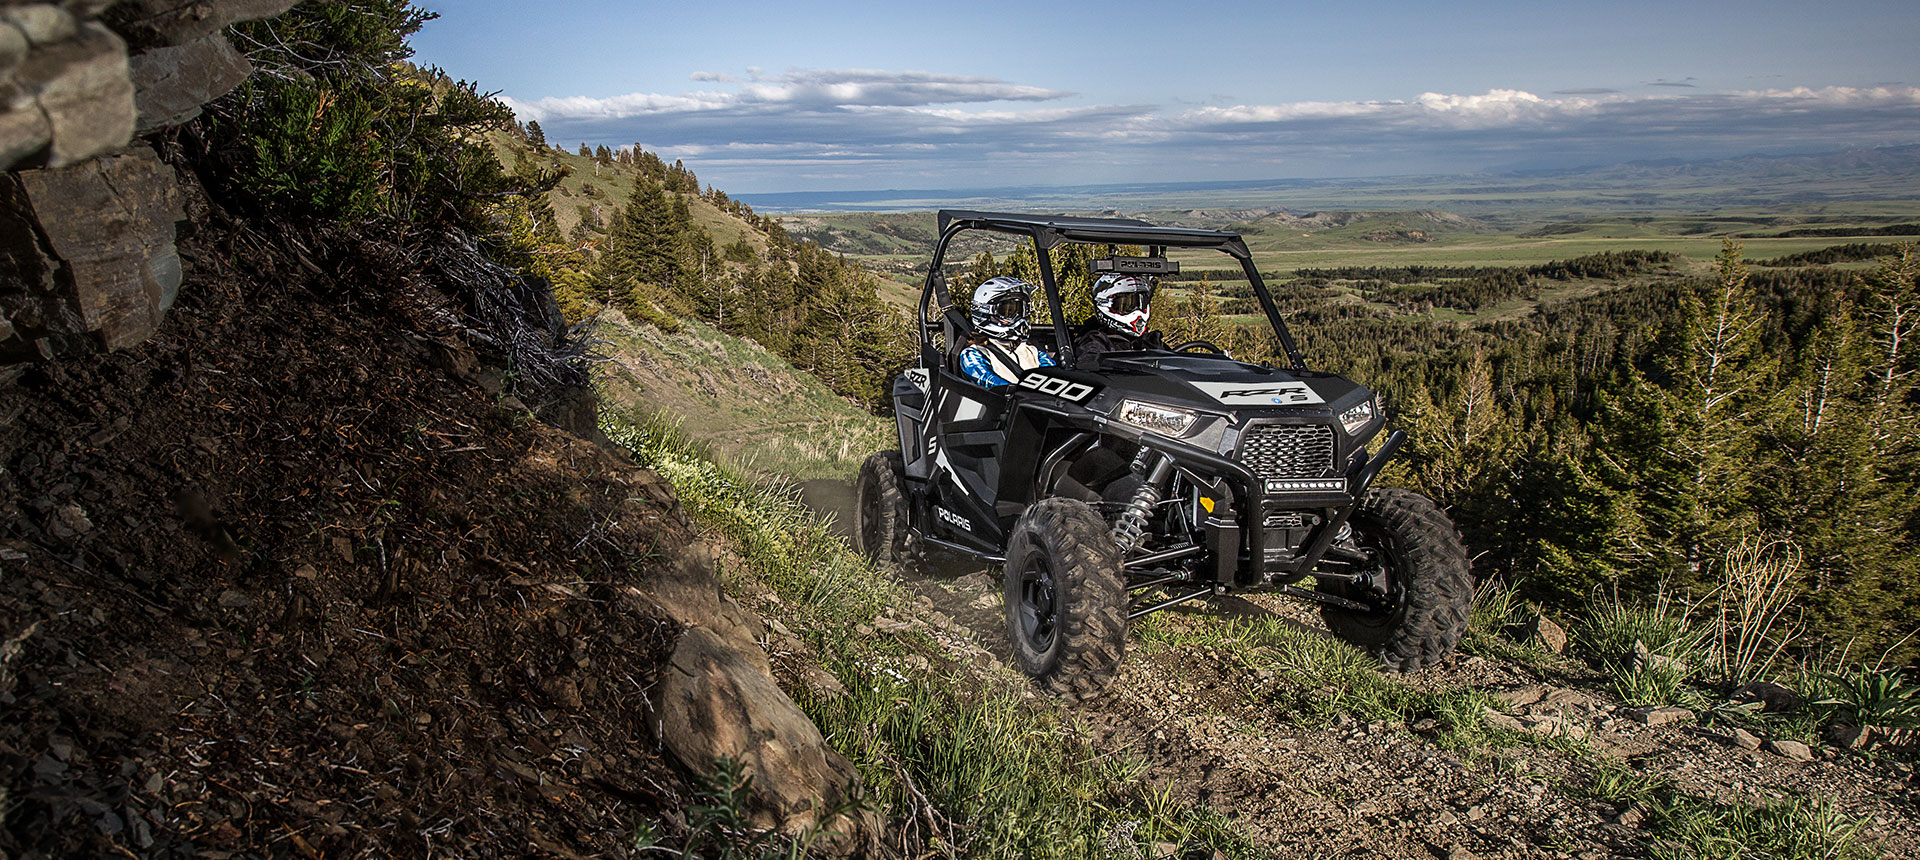 2019 Polaris RZR S 900 EPS in Katy, Texas